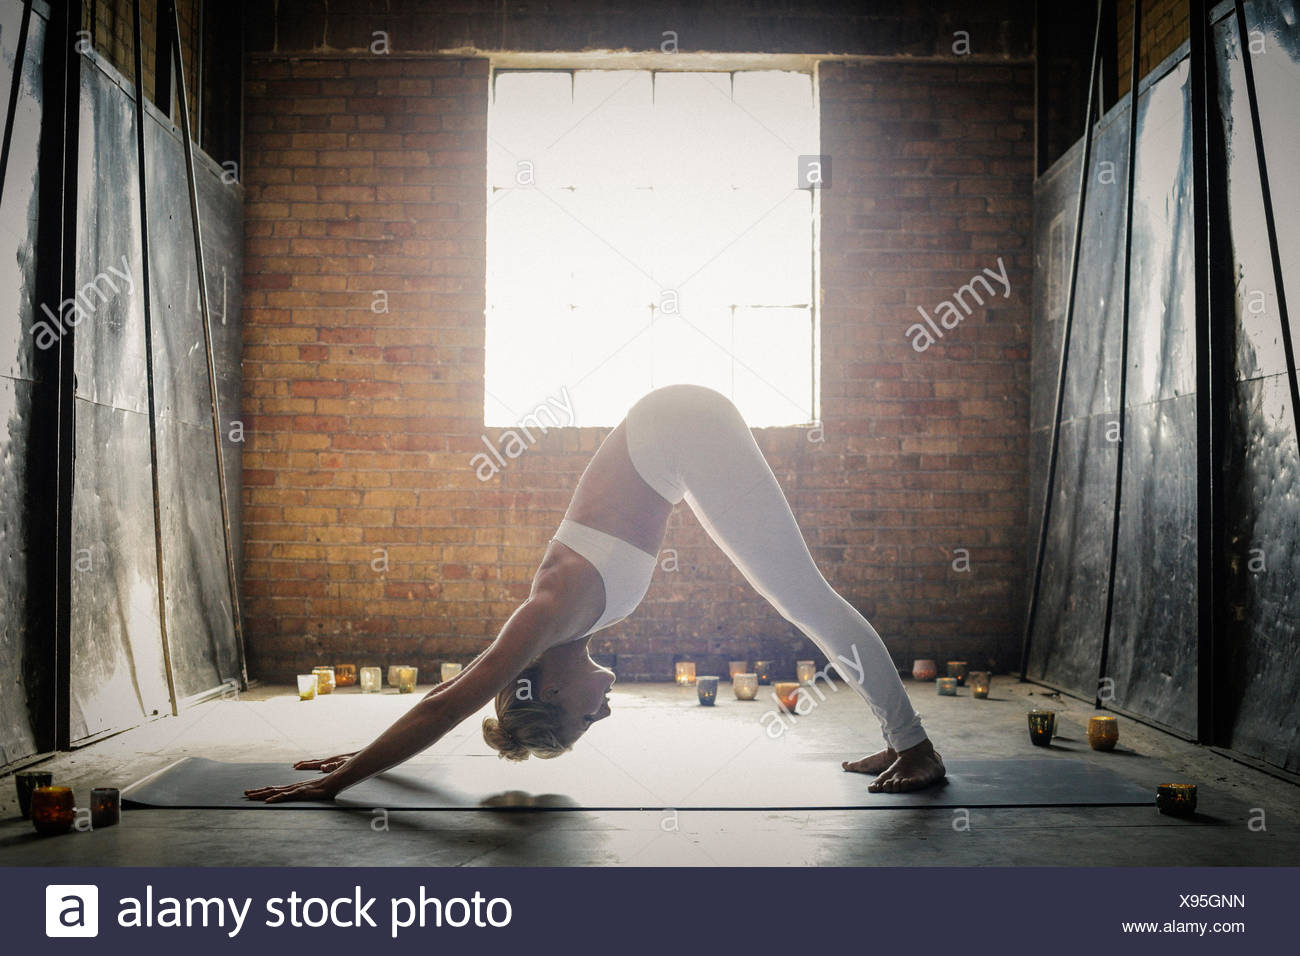 A blonde woman, in a white crop top and leggings, bending down on the floor surrounded by candles, in a yoga position. - Stock Image